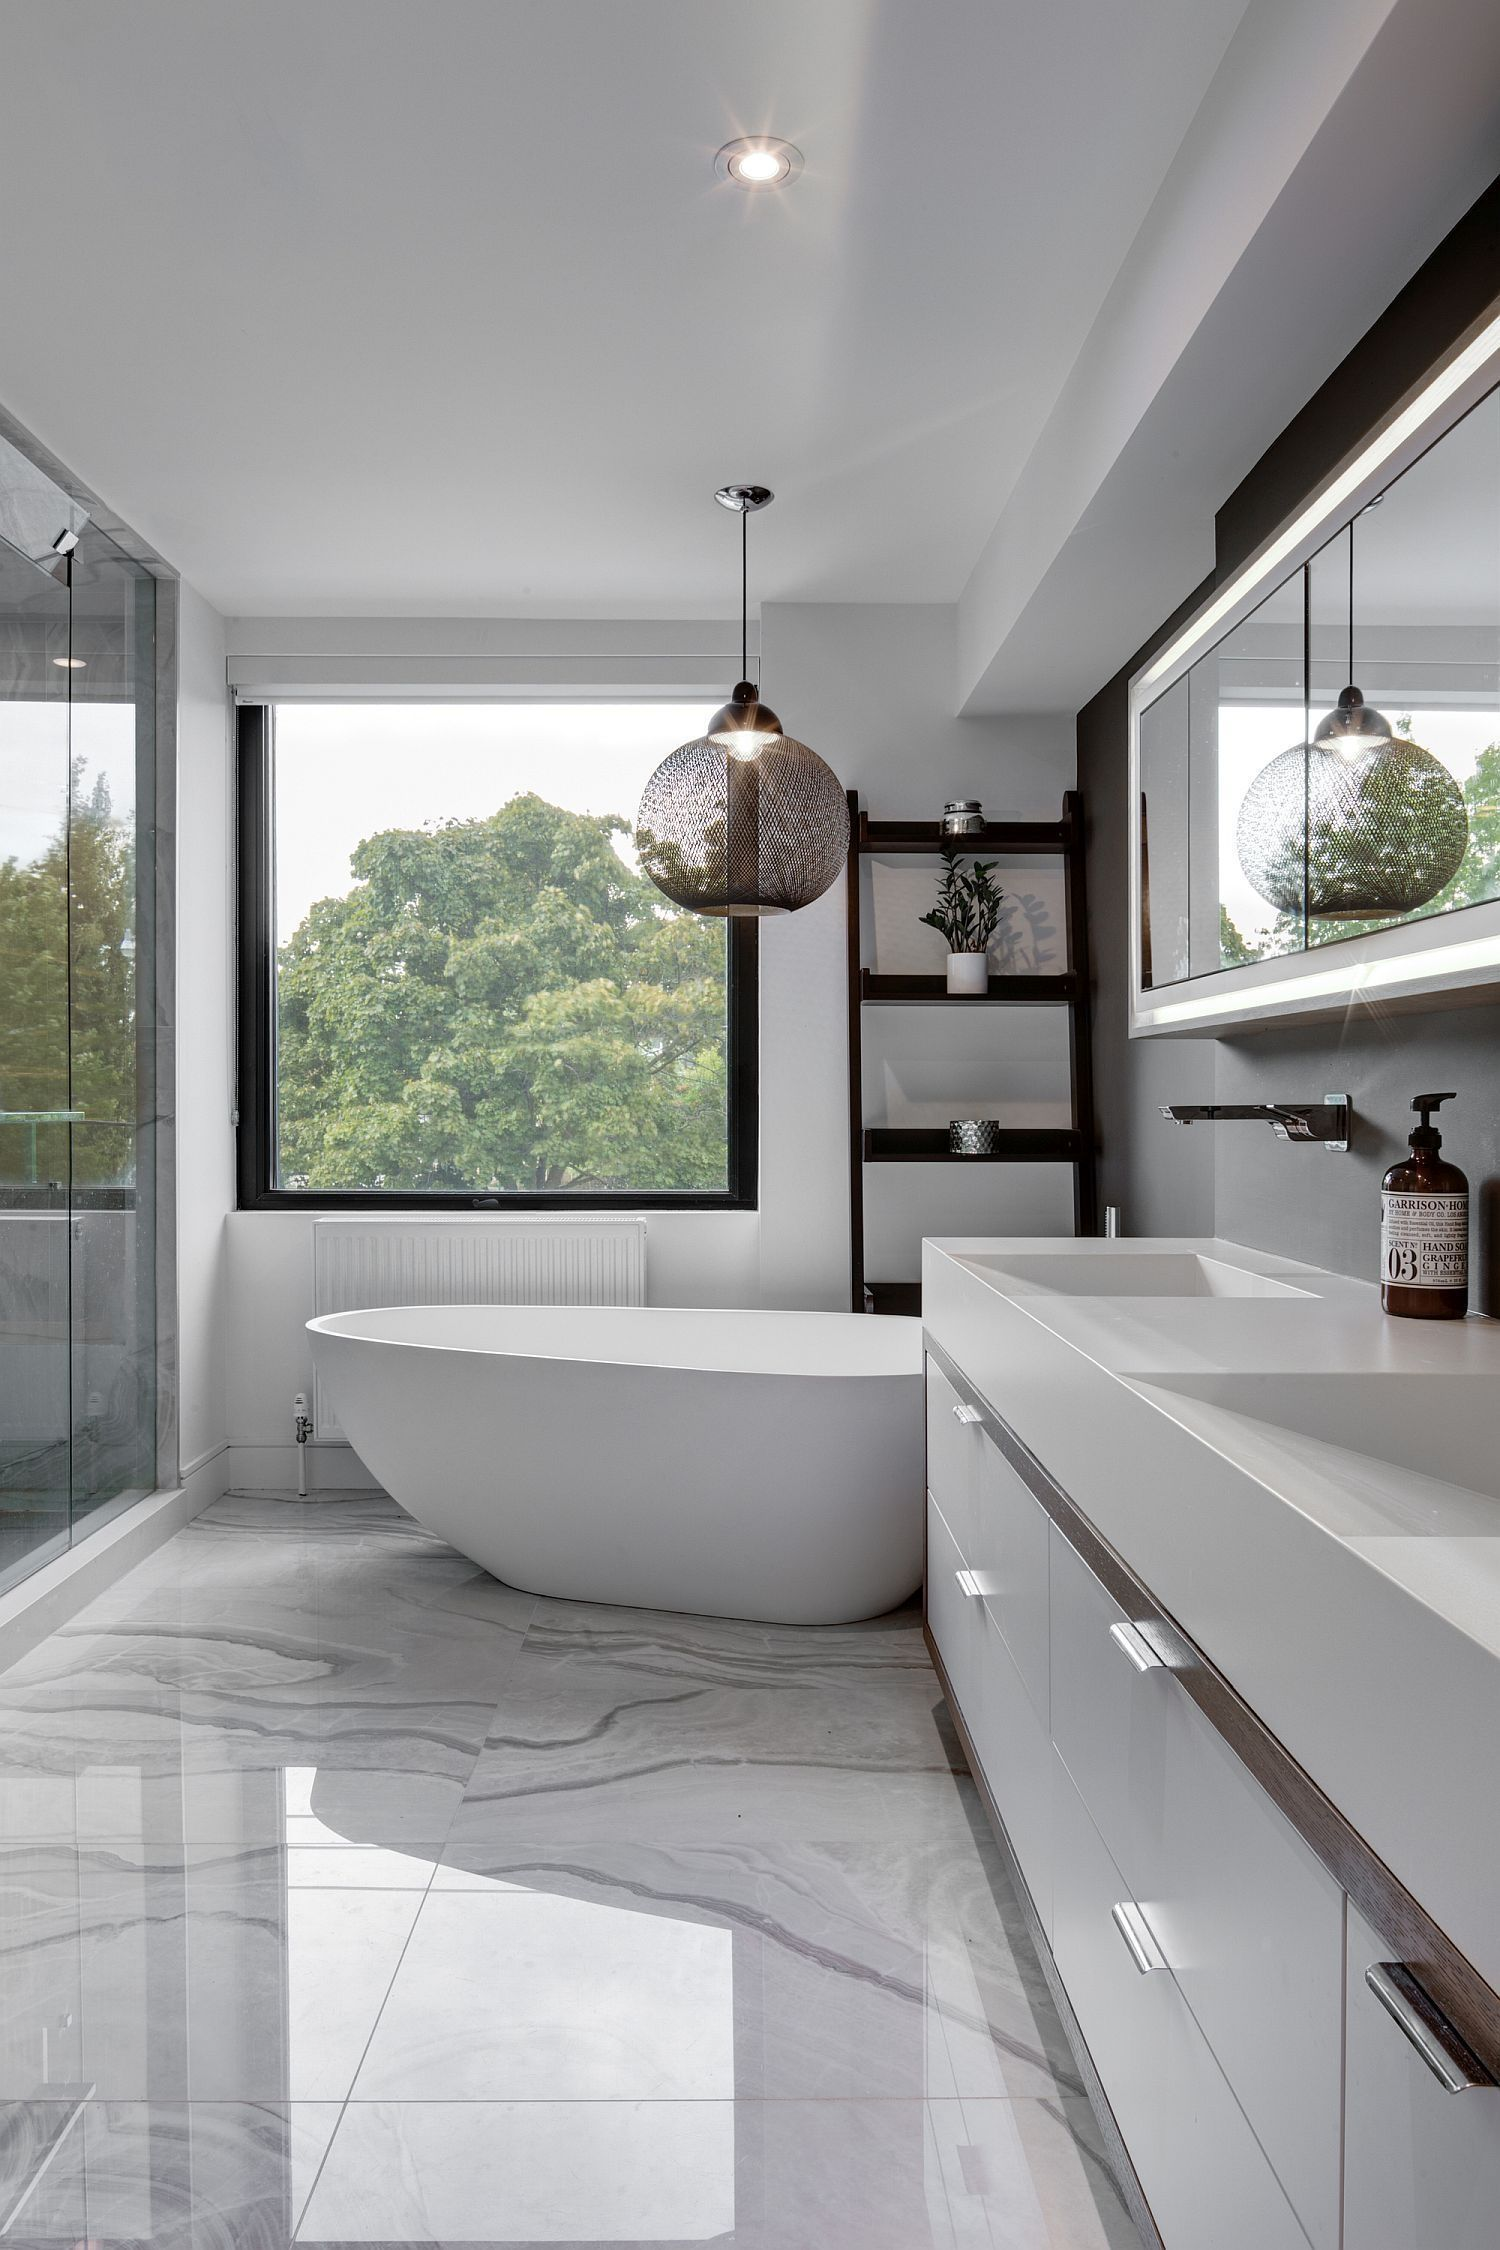 40 modern bathroom design ideas to inspire yourself - How to remodel your bathroom yourself ...